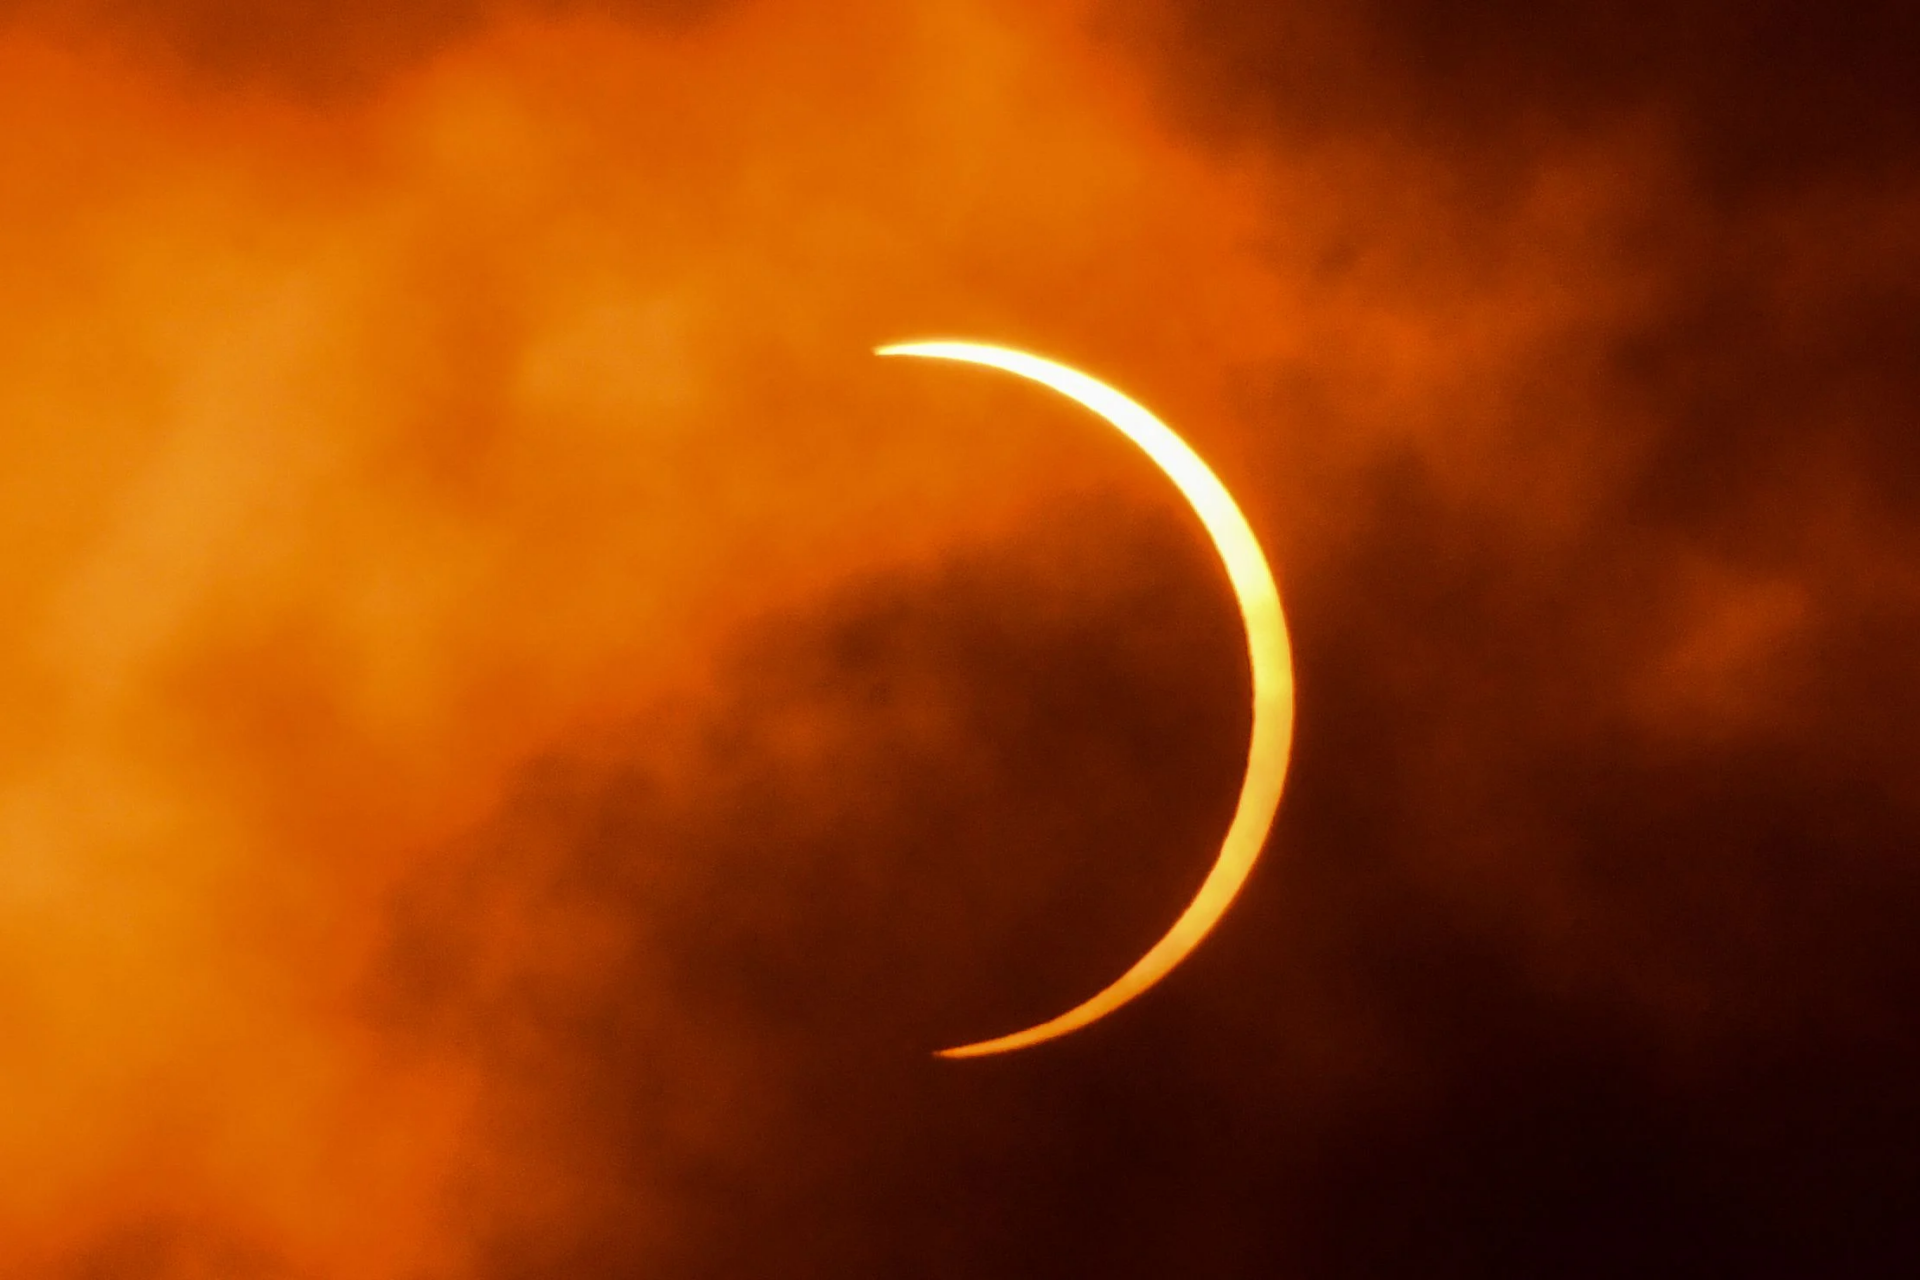 chasing rare ring of fire annular solar eclipse in africa and asia